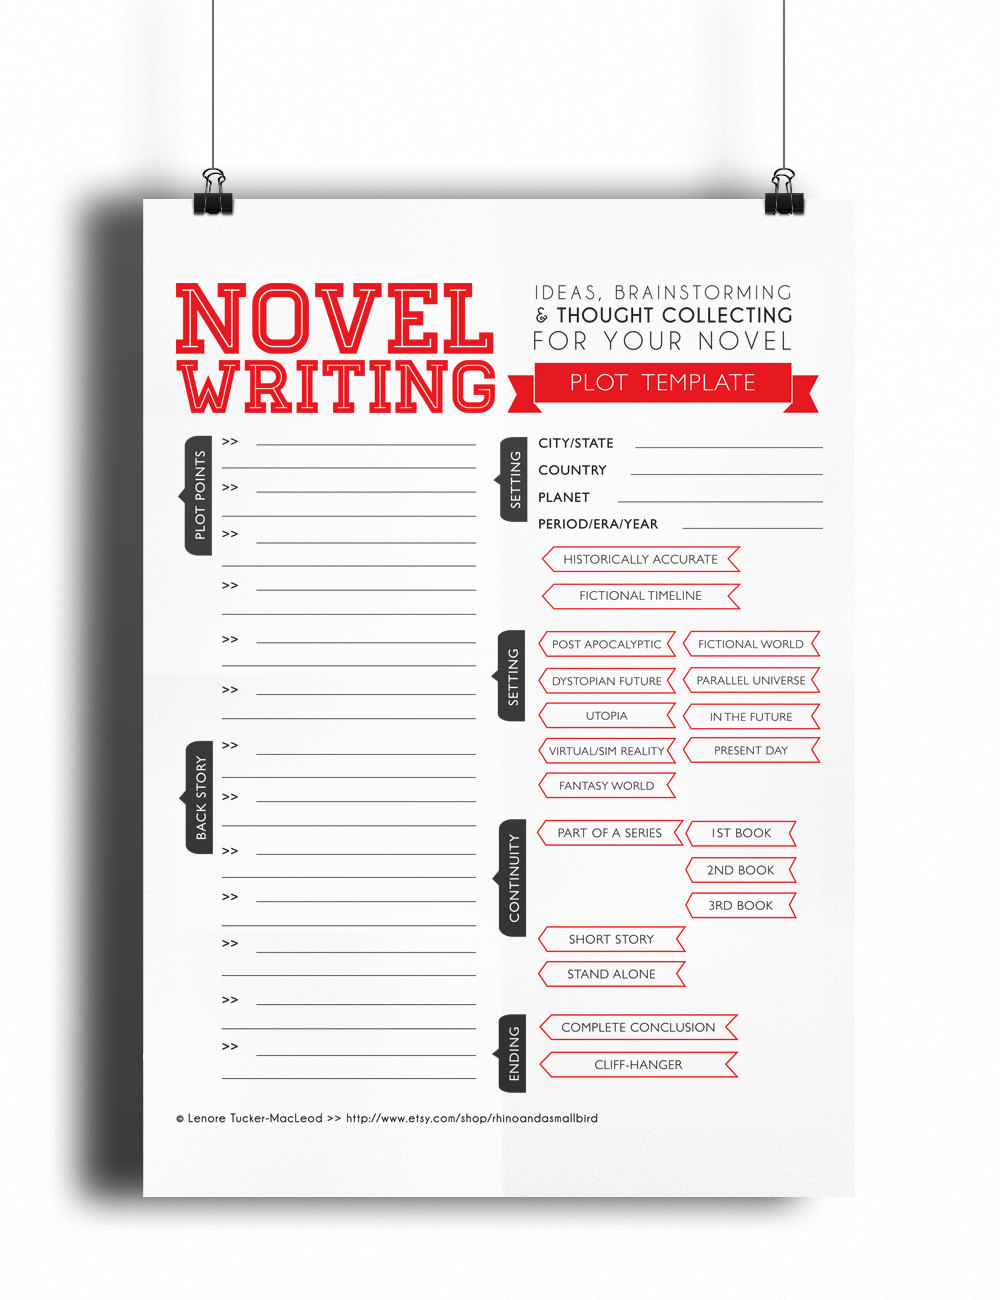 Using Word for Writing a Novel